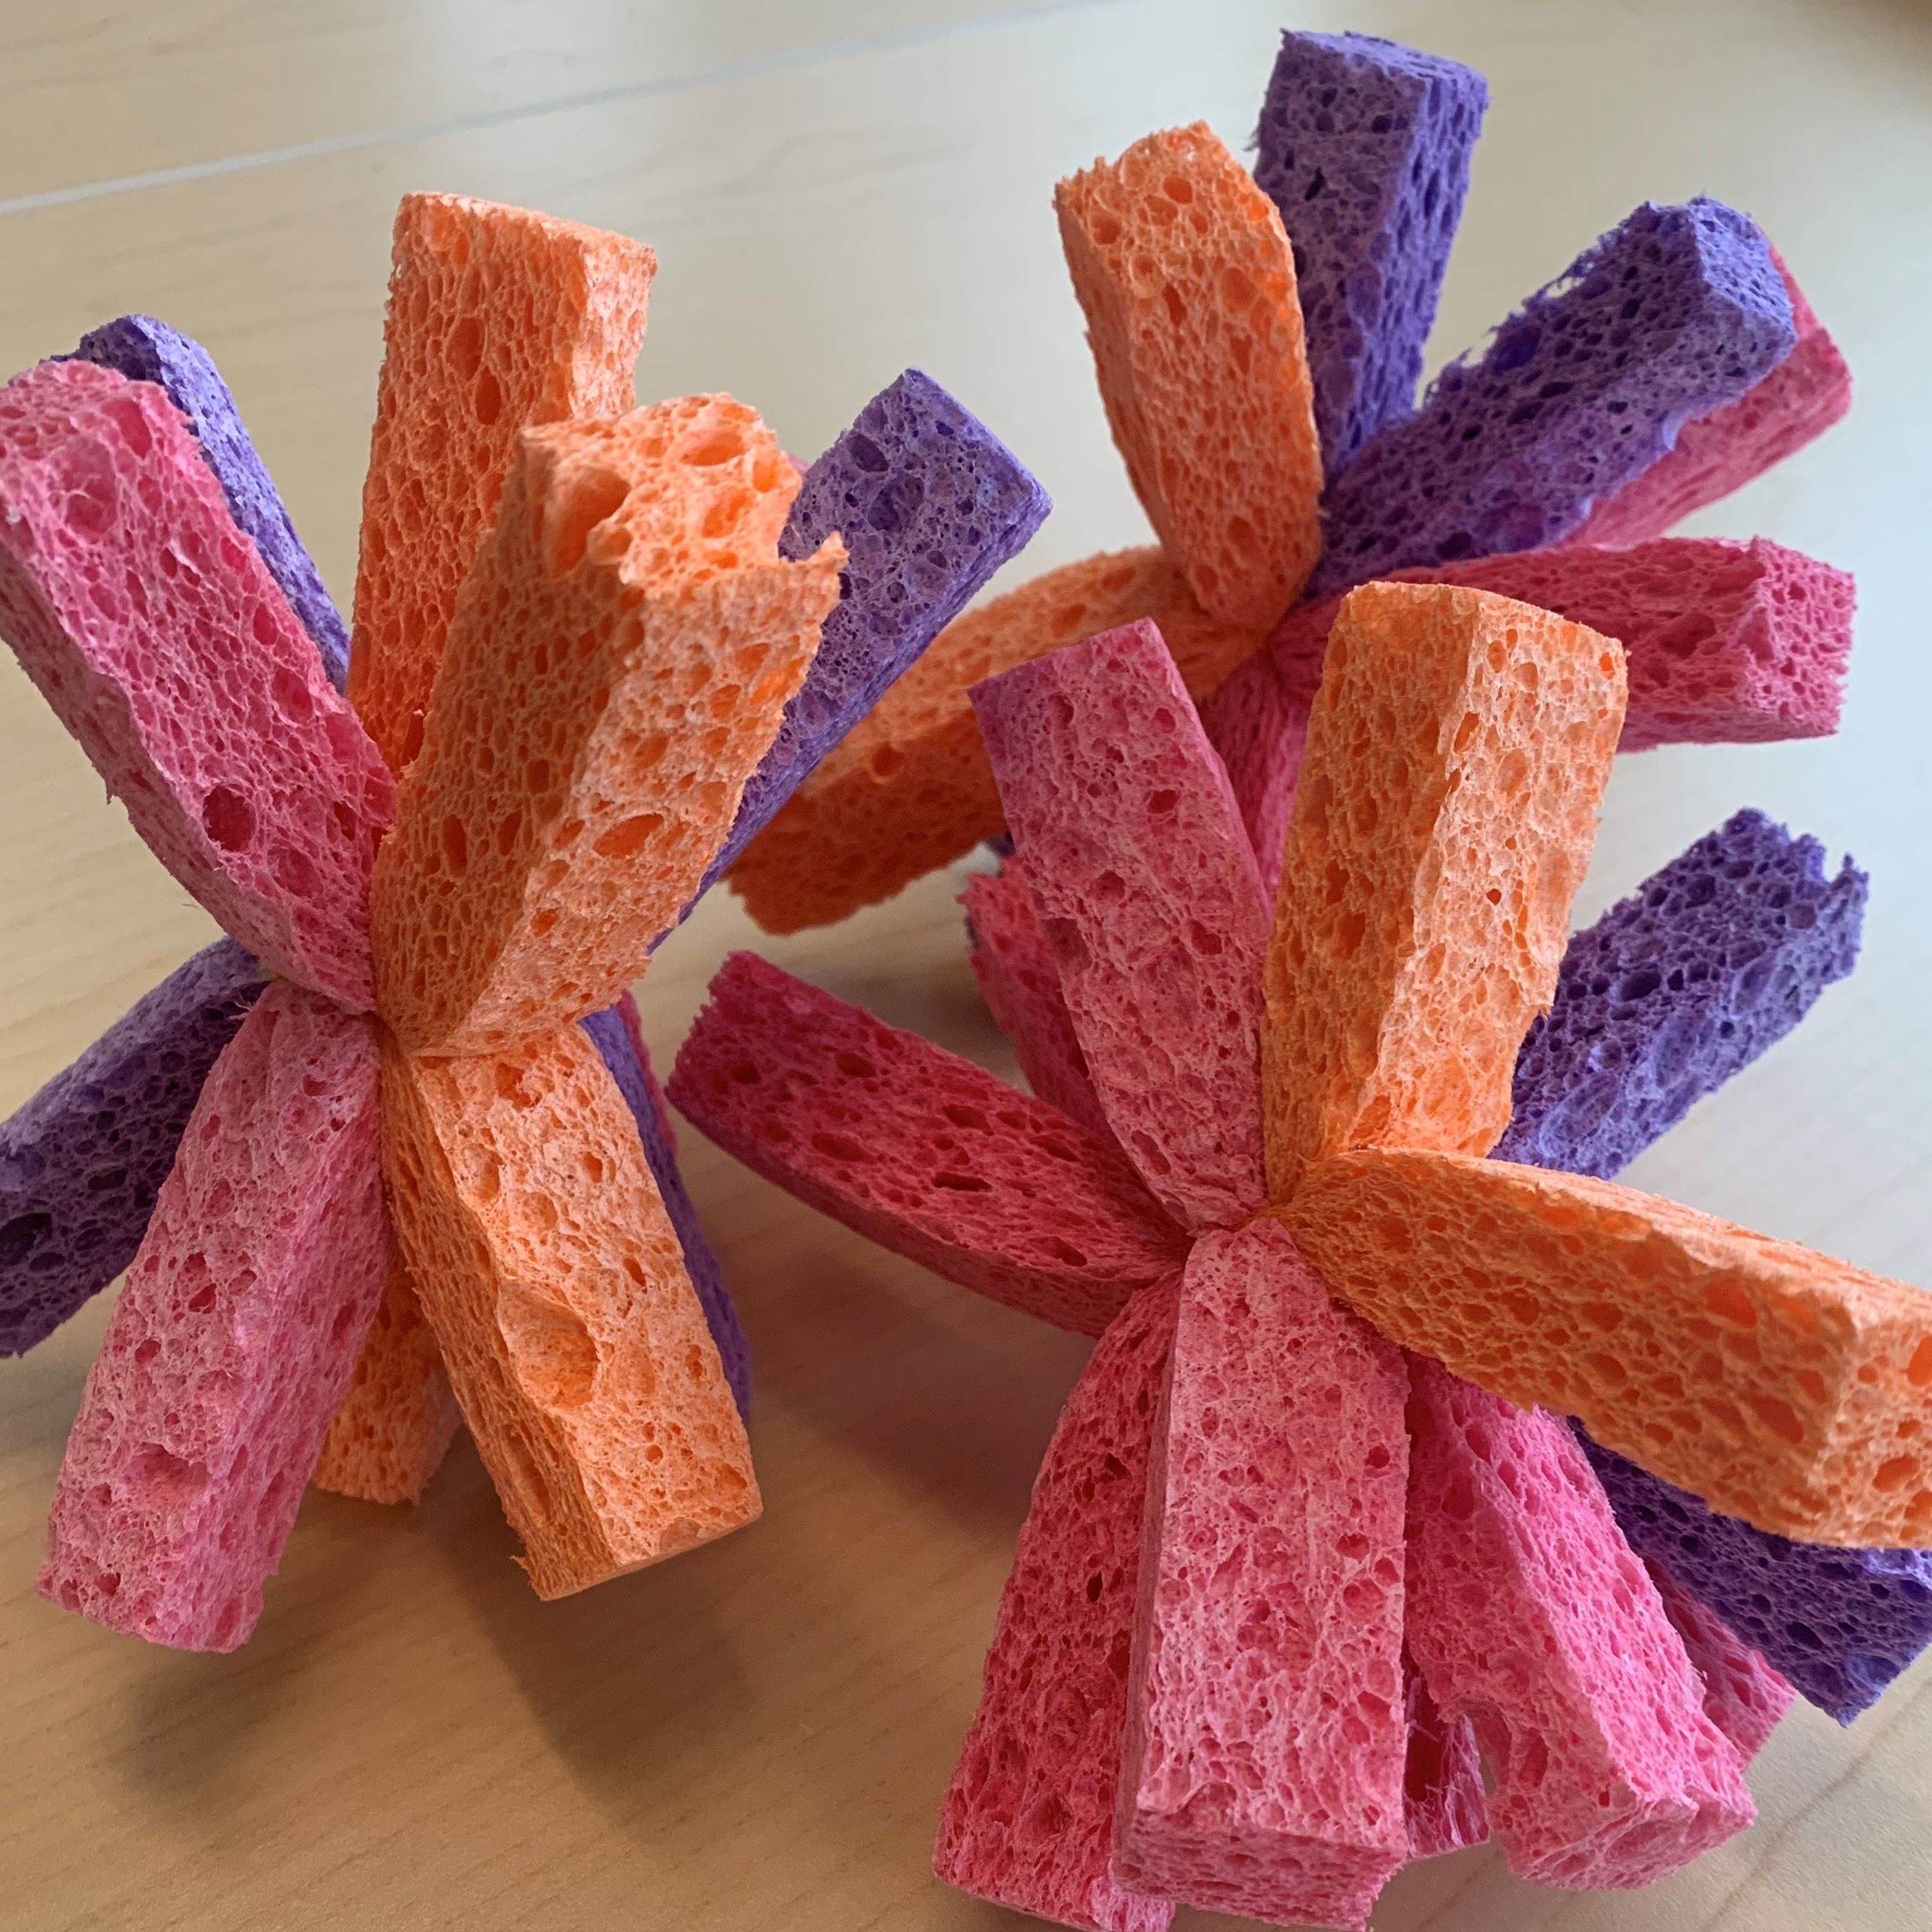 strips of colored sponges tied together